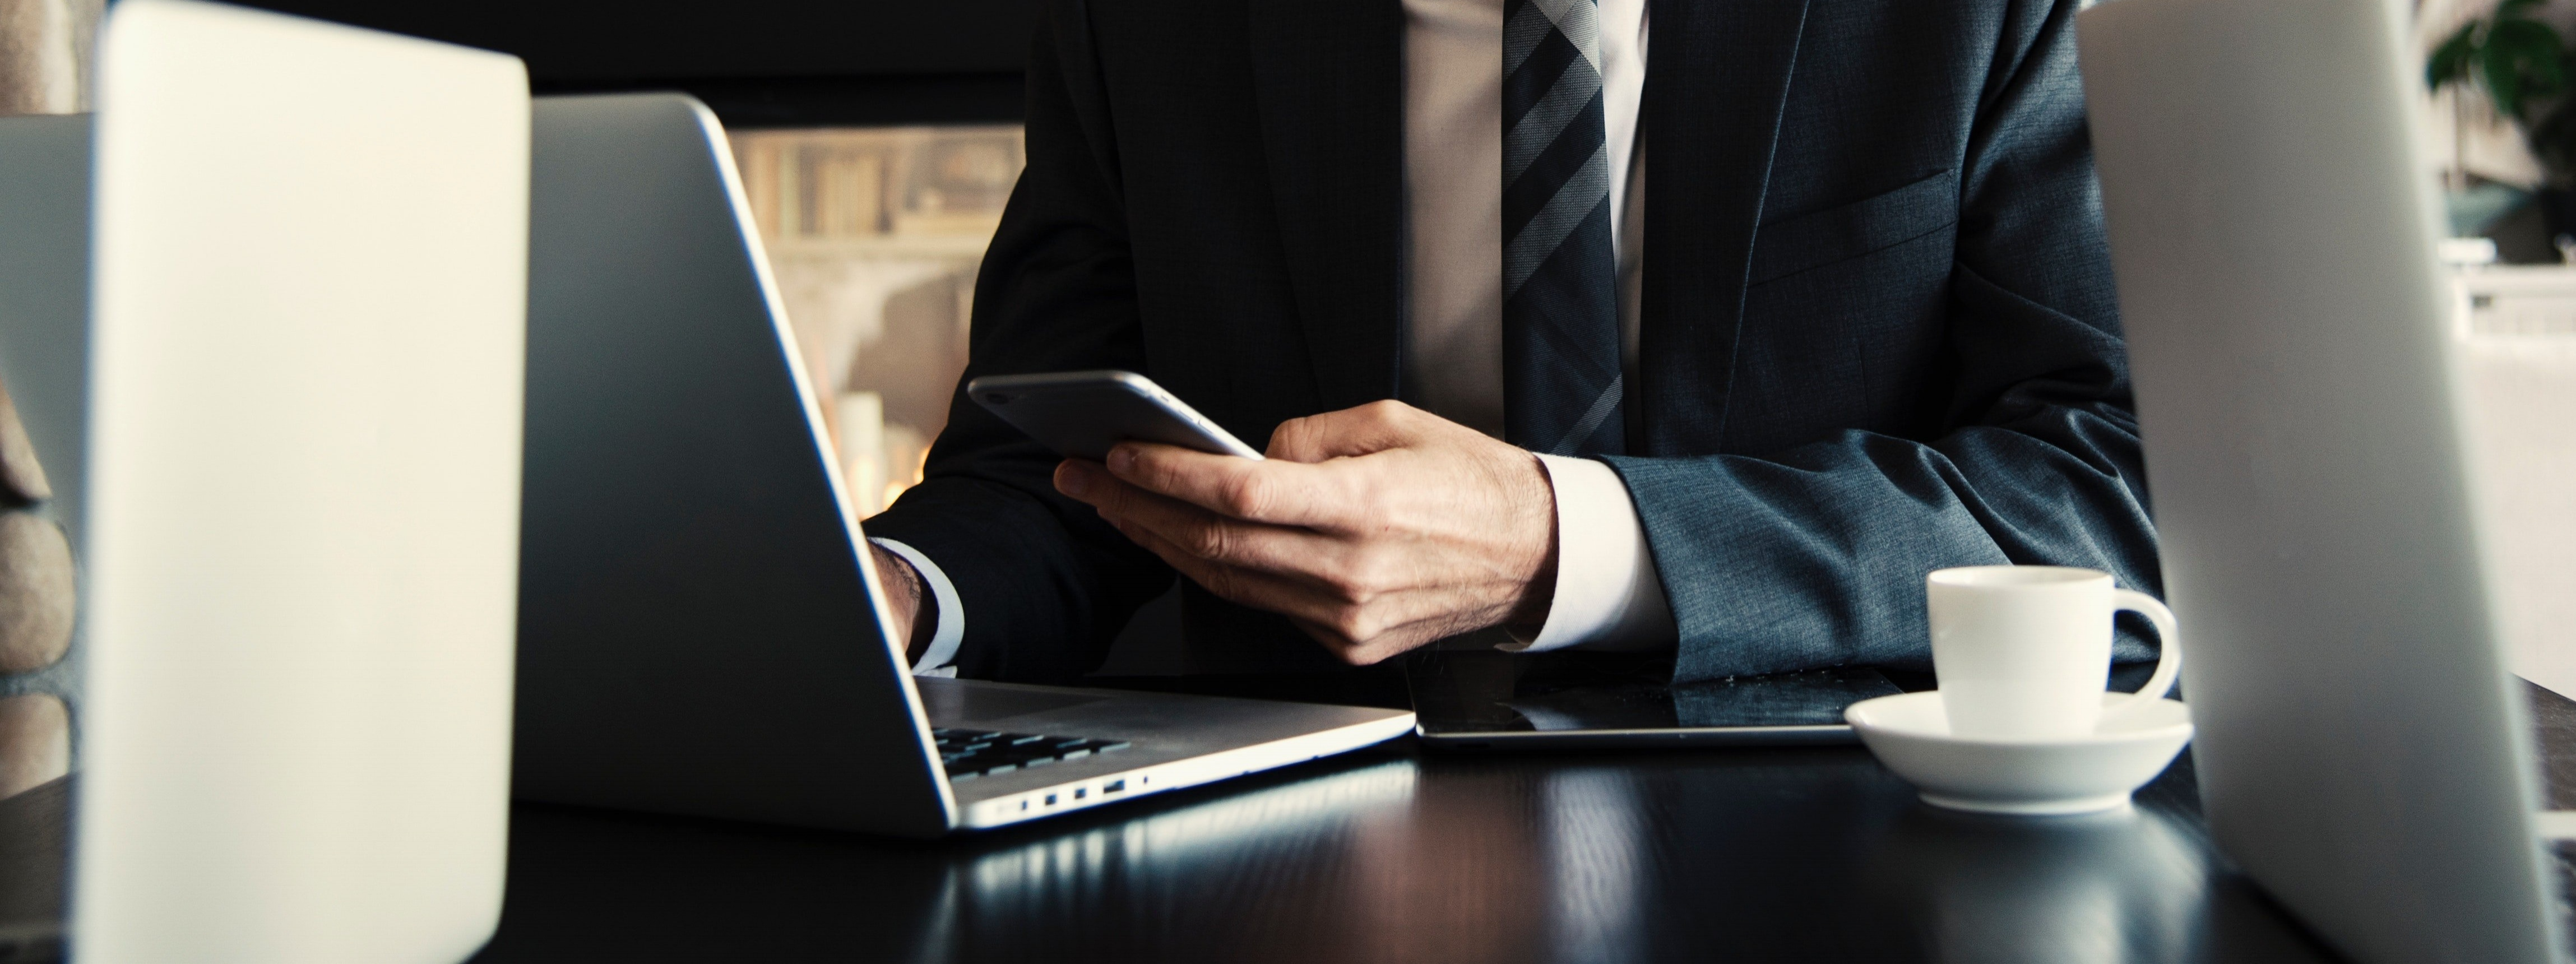 man-in-suit-on-phone-and-laptop-at-table-553114-edited